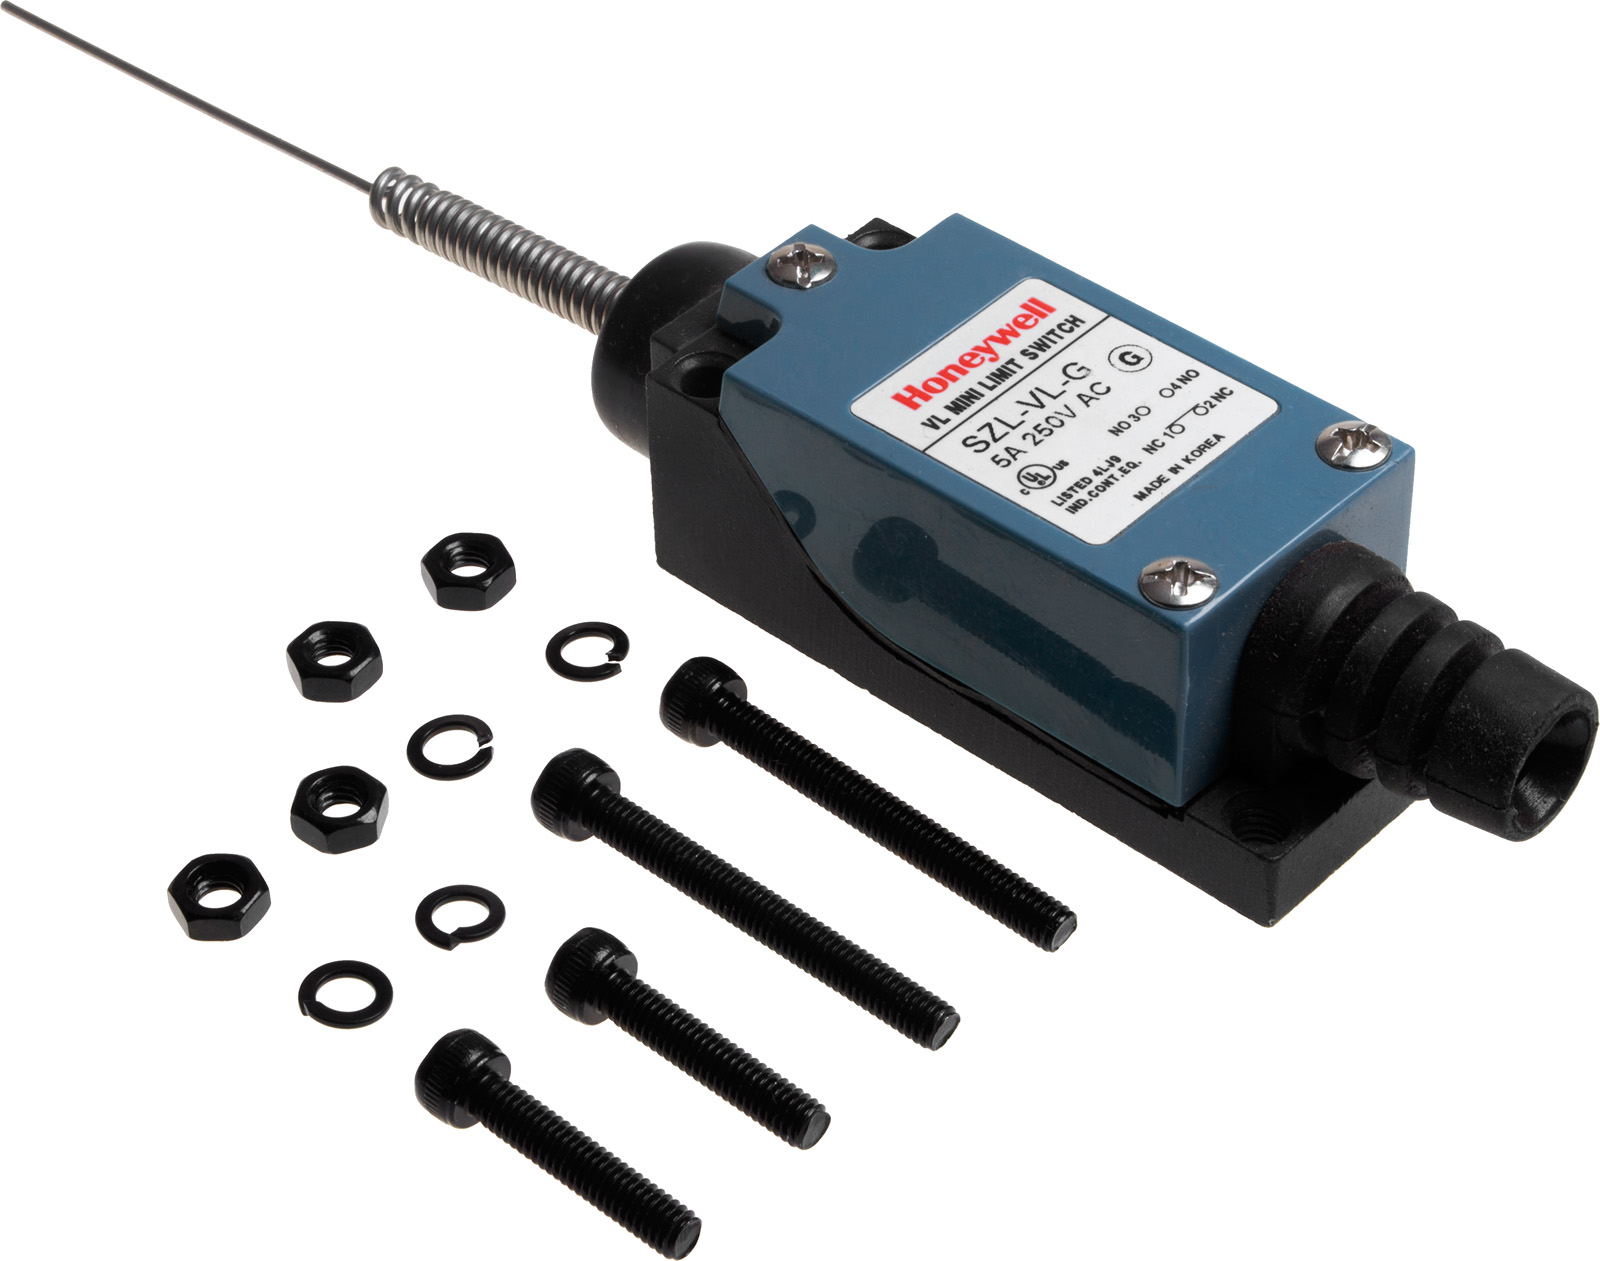 Photo of a Honeywell SZL-VL-G limit switch with wobble wire actuator and the included components.